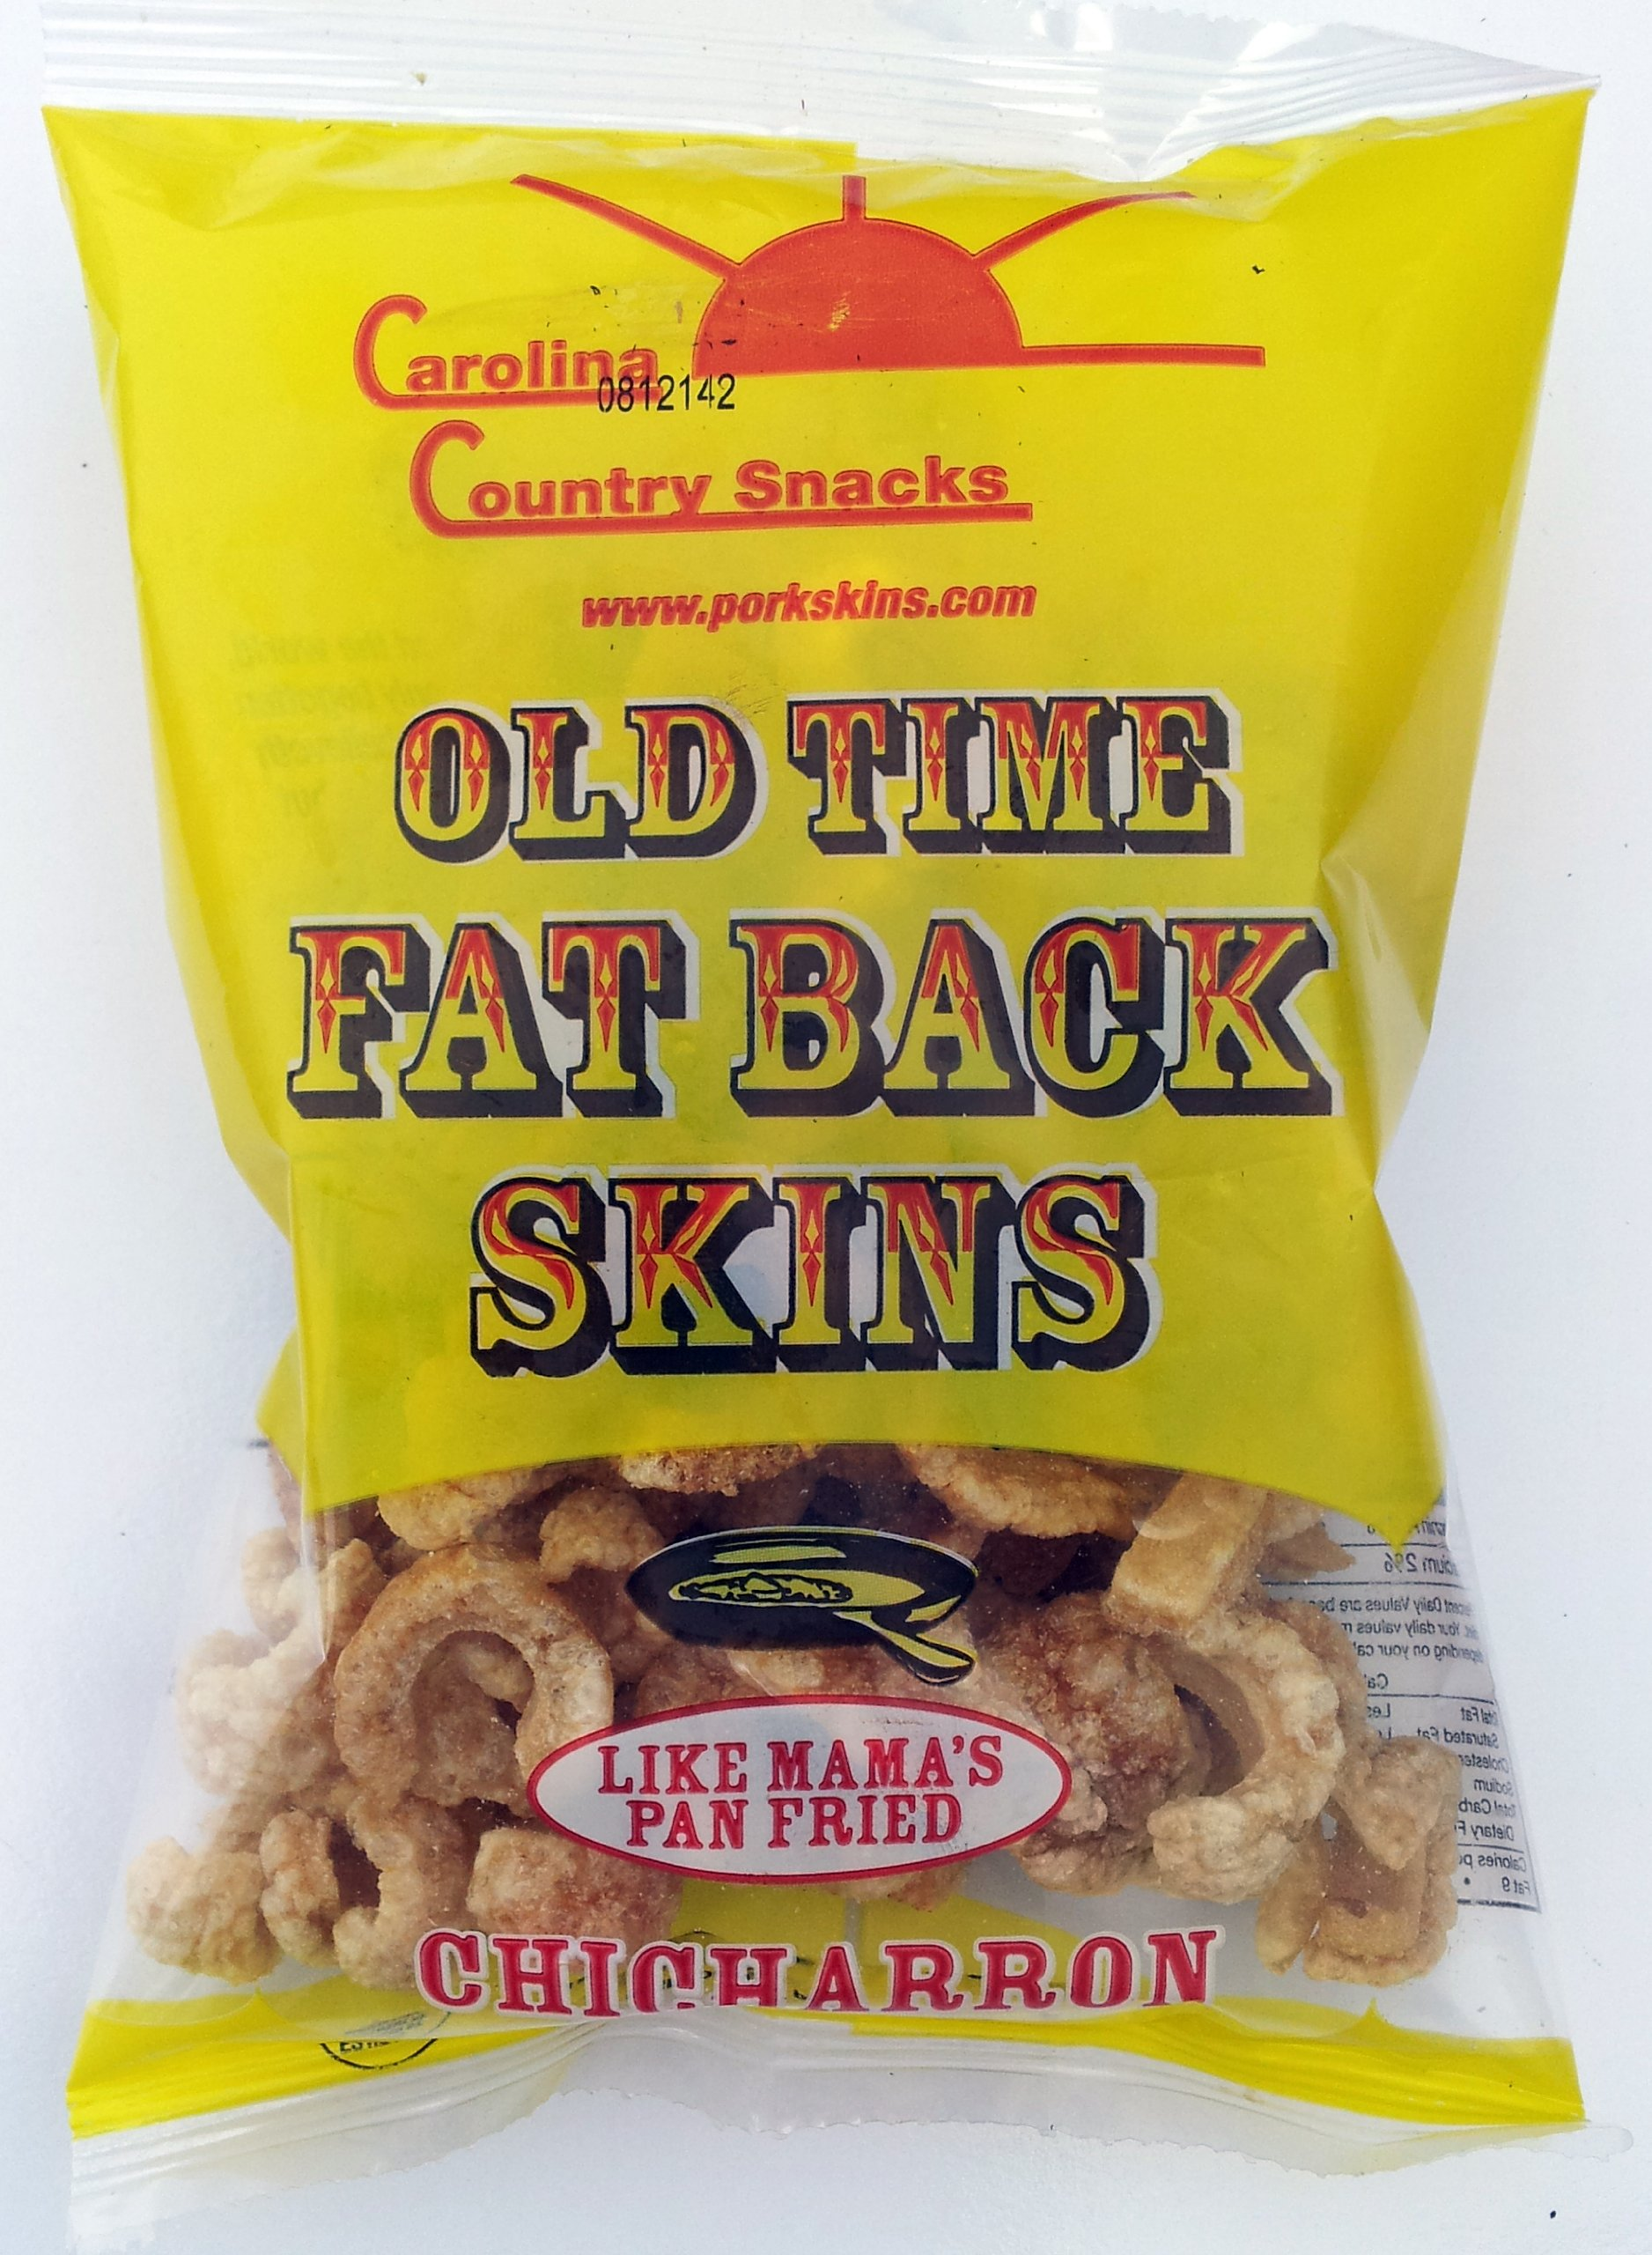 Old Time Fat Back Skins Chicharron (Strips) Plain 36 bags (3.5 oz) by Carolina Country Snacks (Image #1)